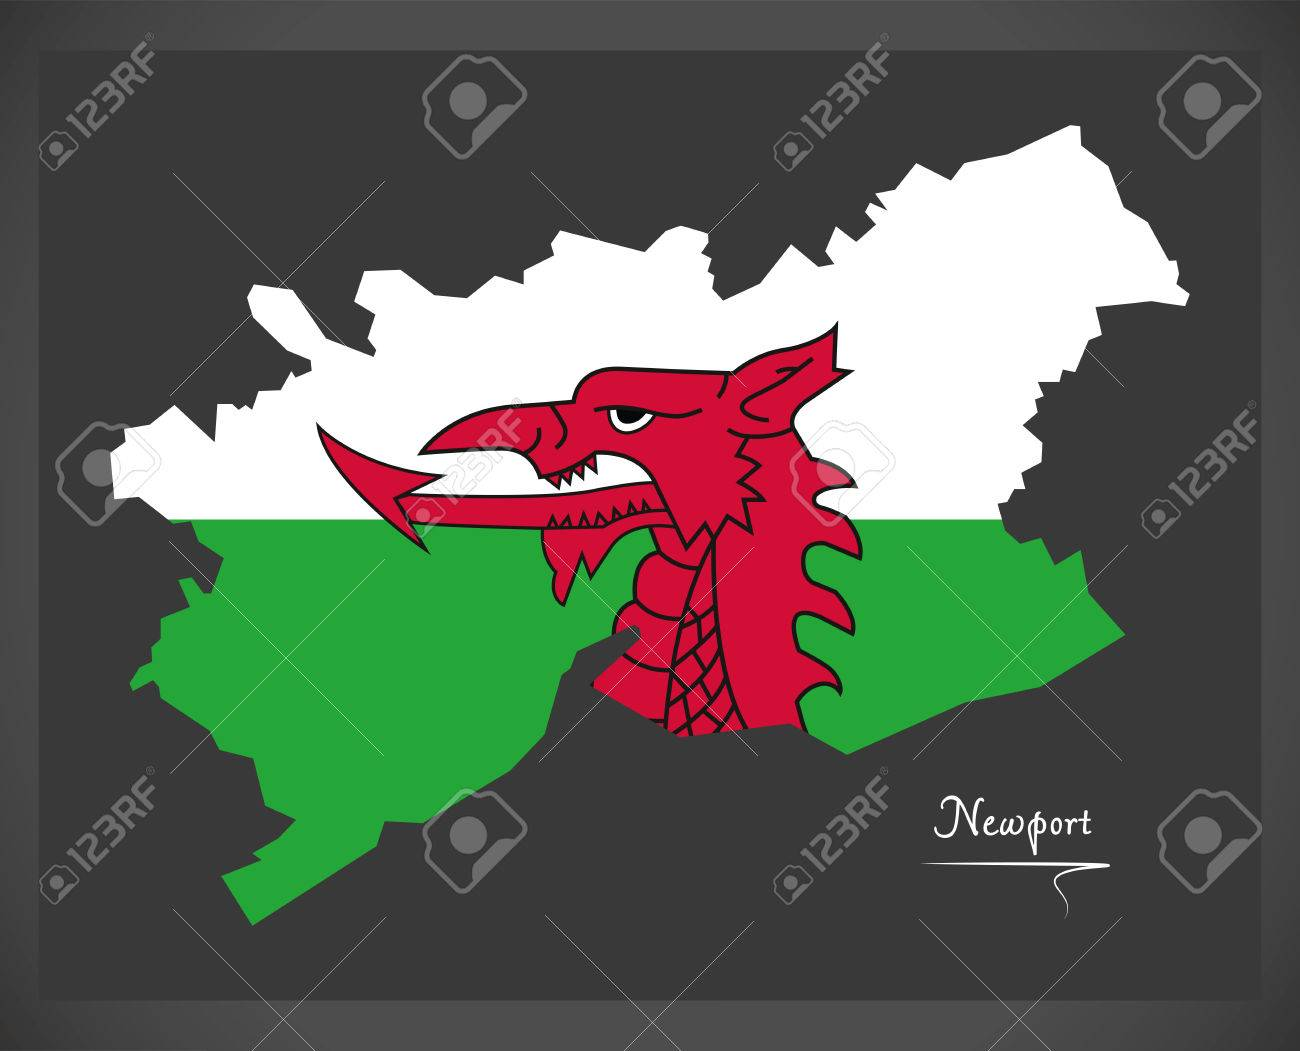 Royalty Free Map%0A Newport Wales map with Welsh national flag illustration Stock Vector